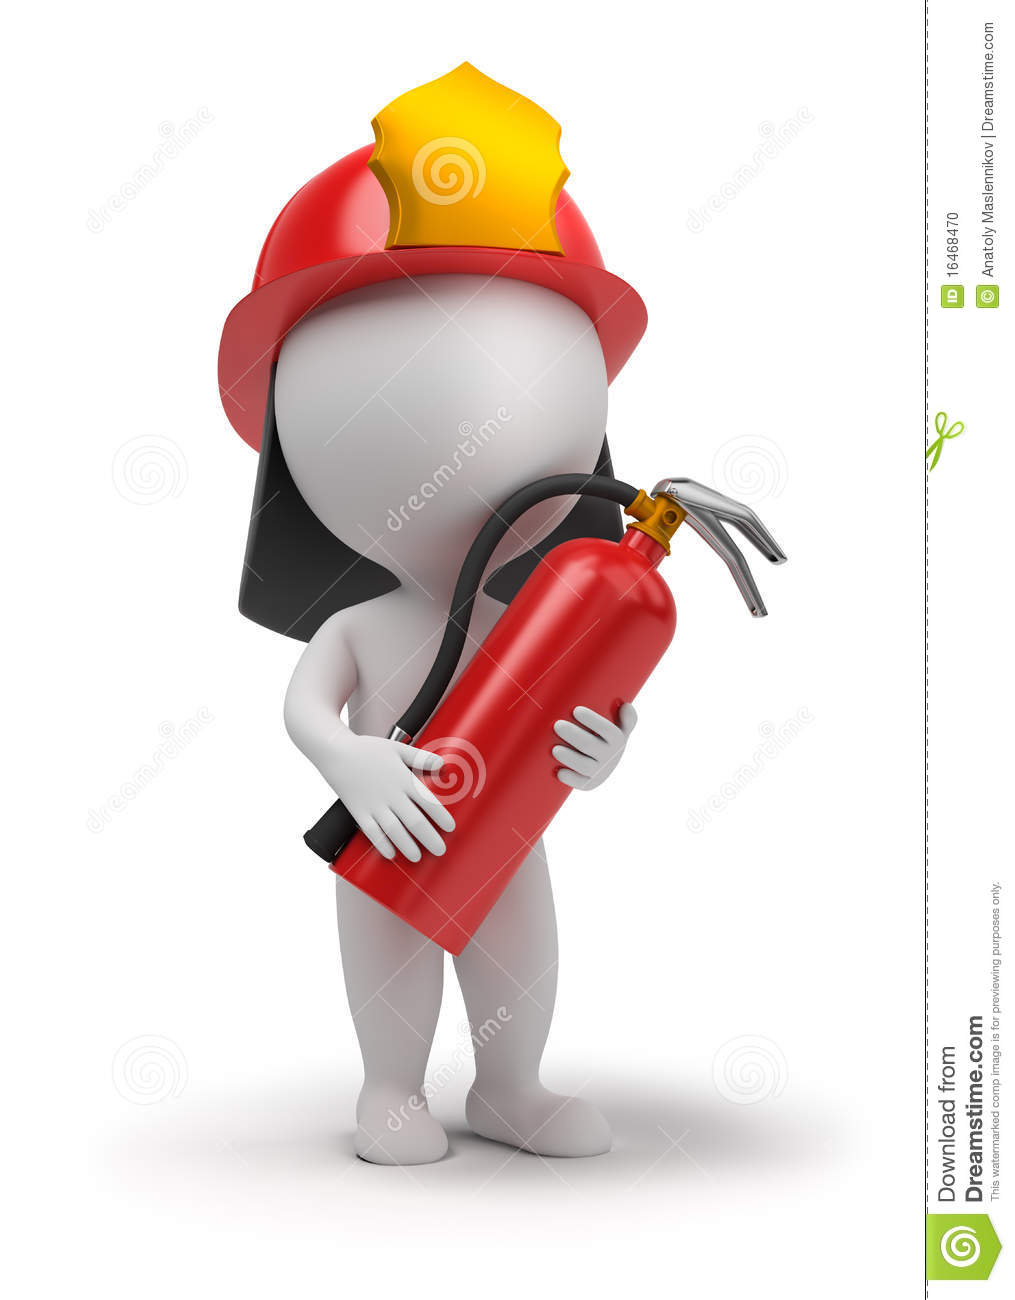 ... extinguisher and in a helmet. 3d image. Isolated white background